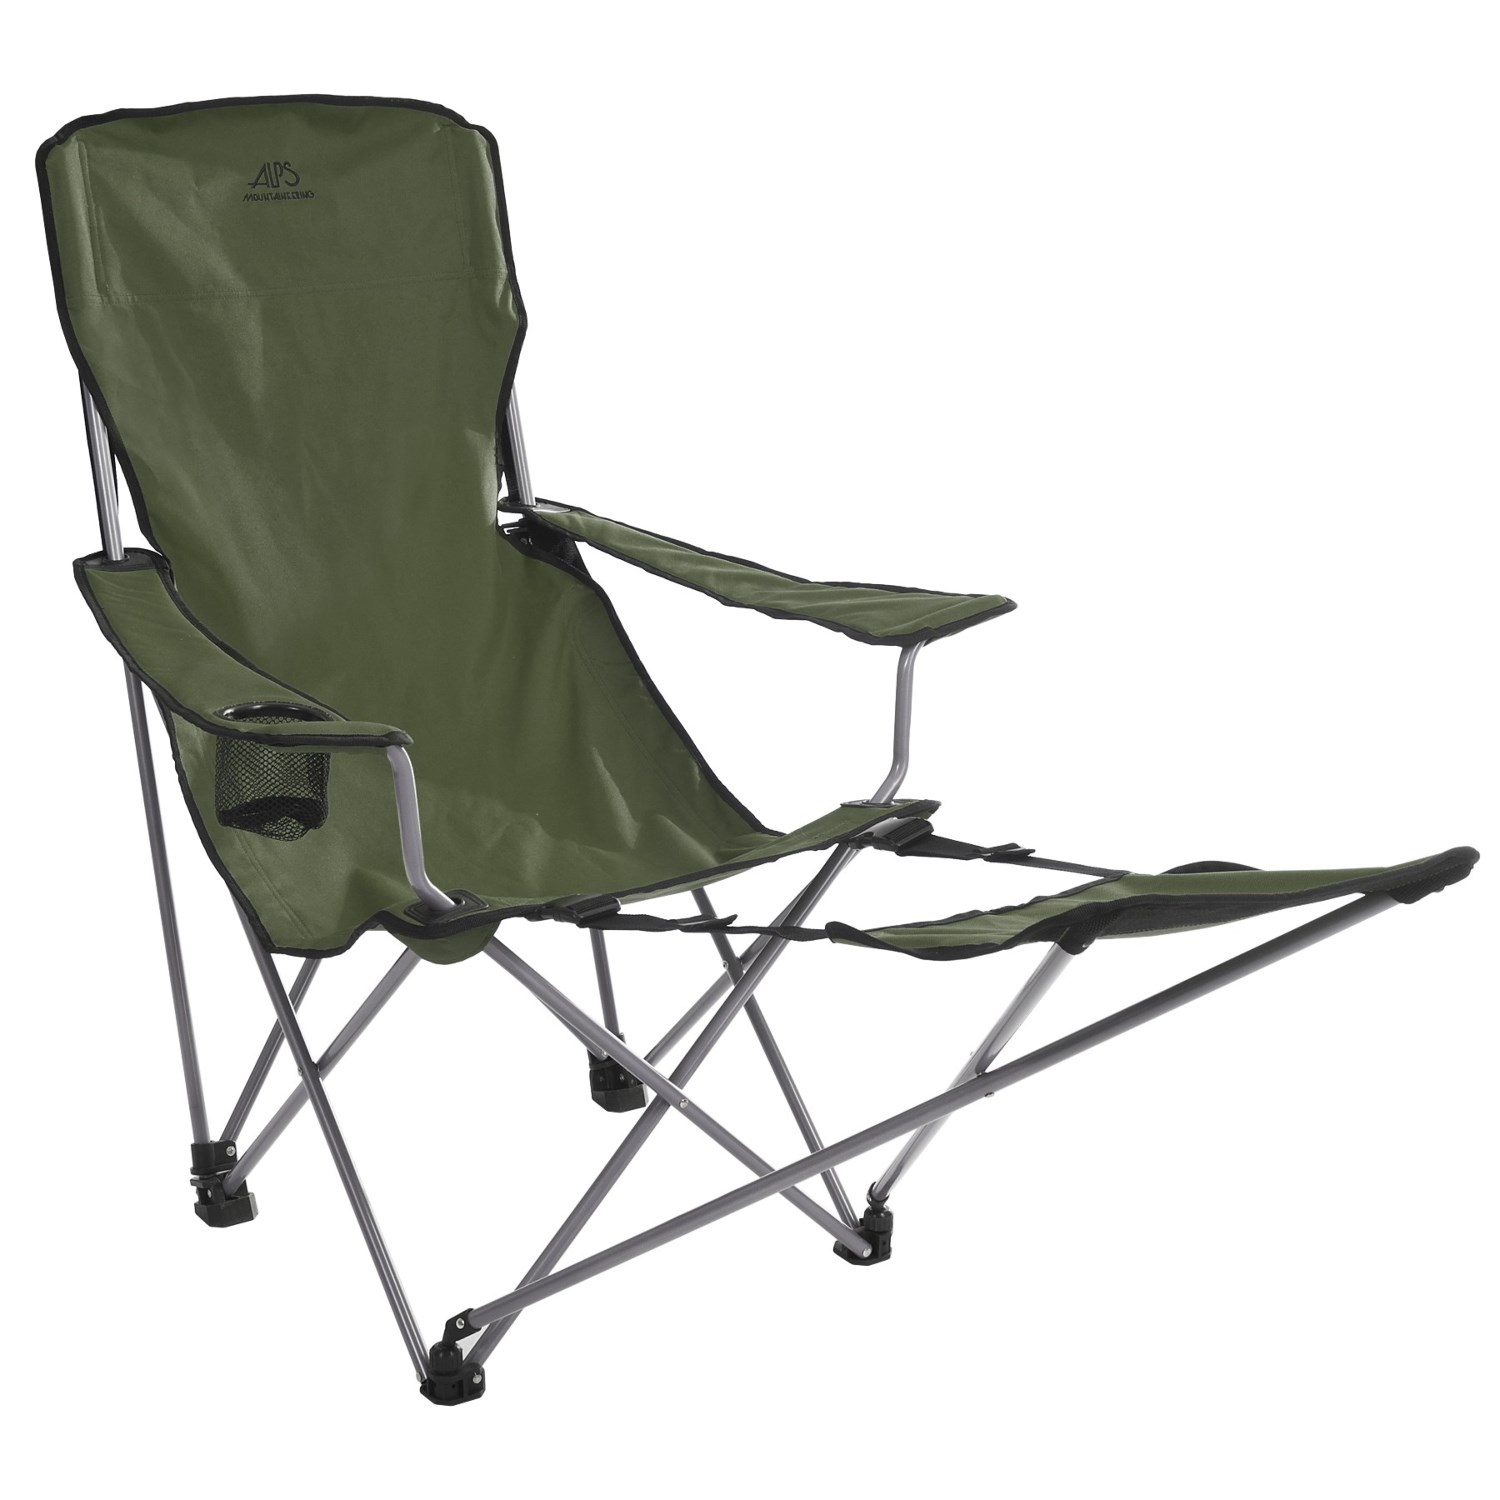 ALPS Mountaineering Escape Camp Chair Save 50%